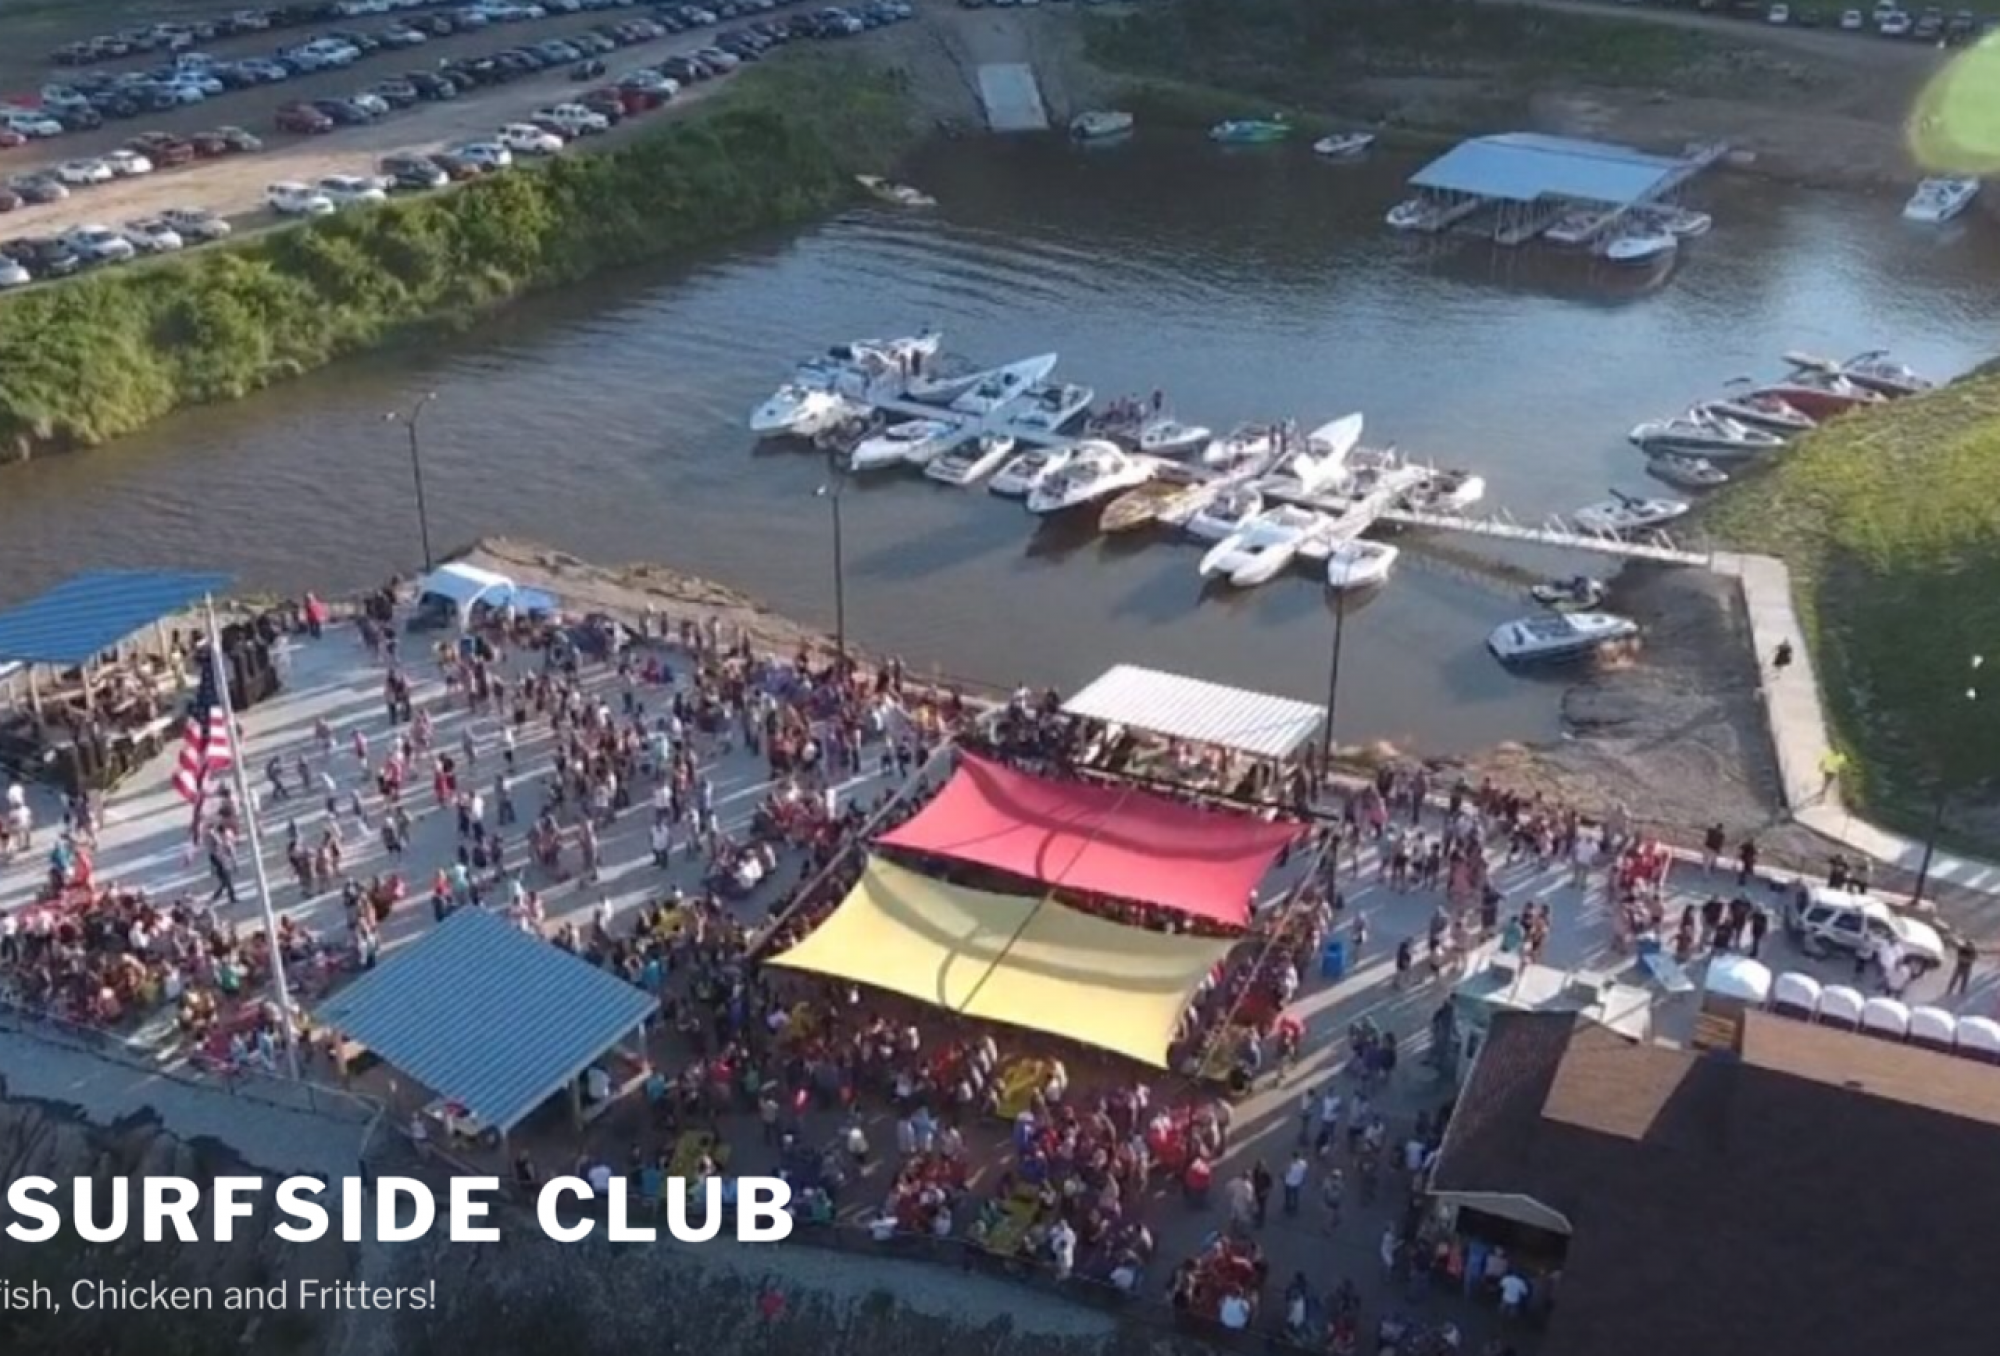 The Surfside Club